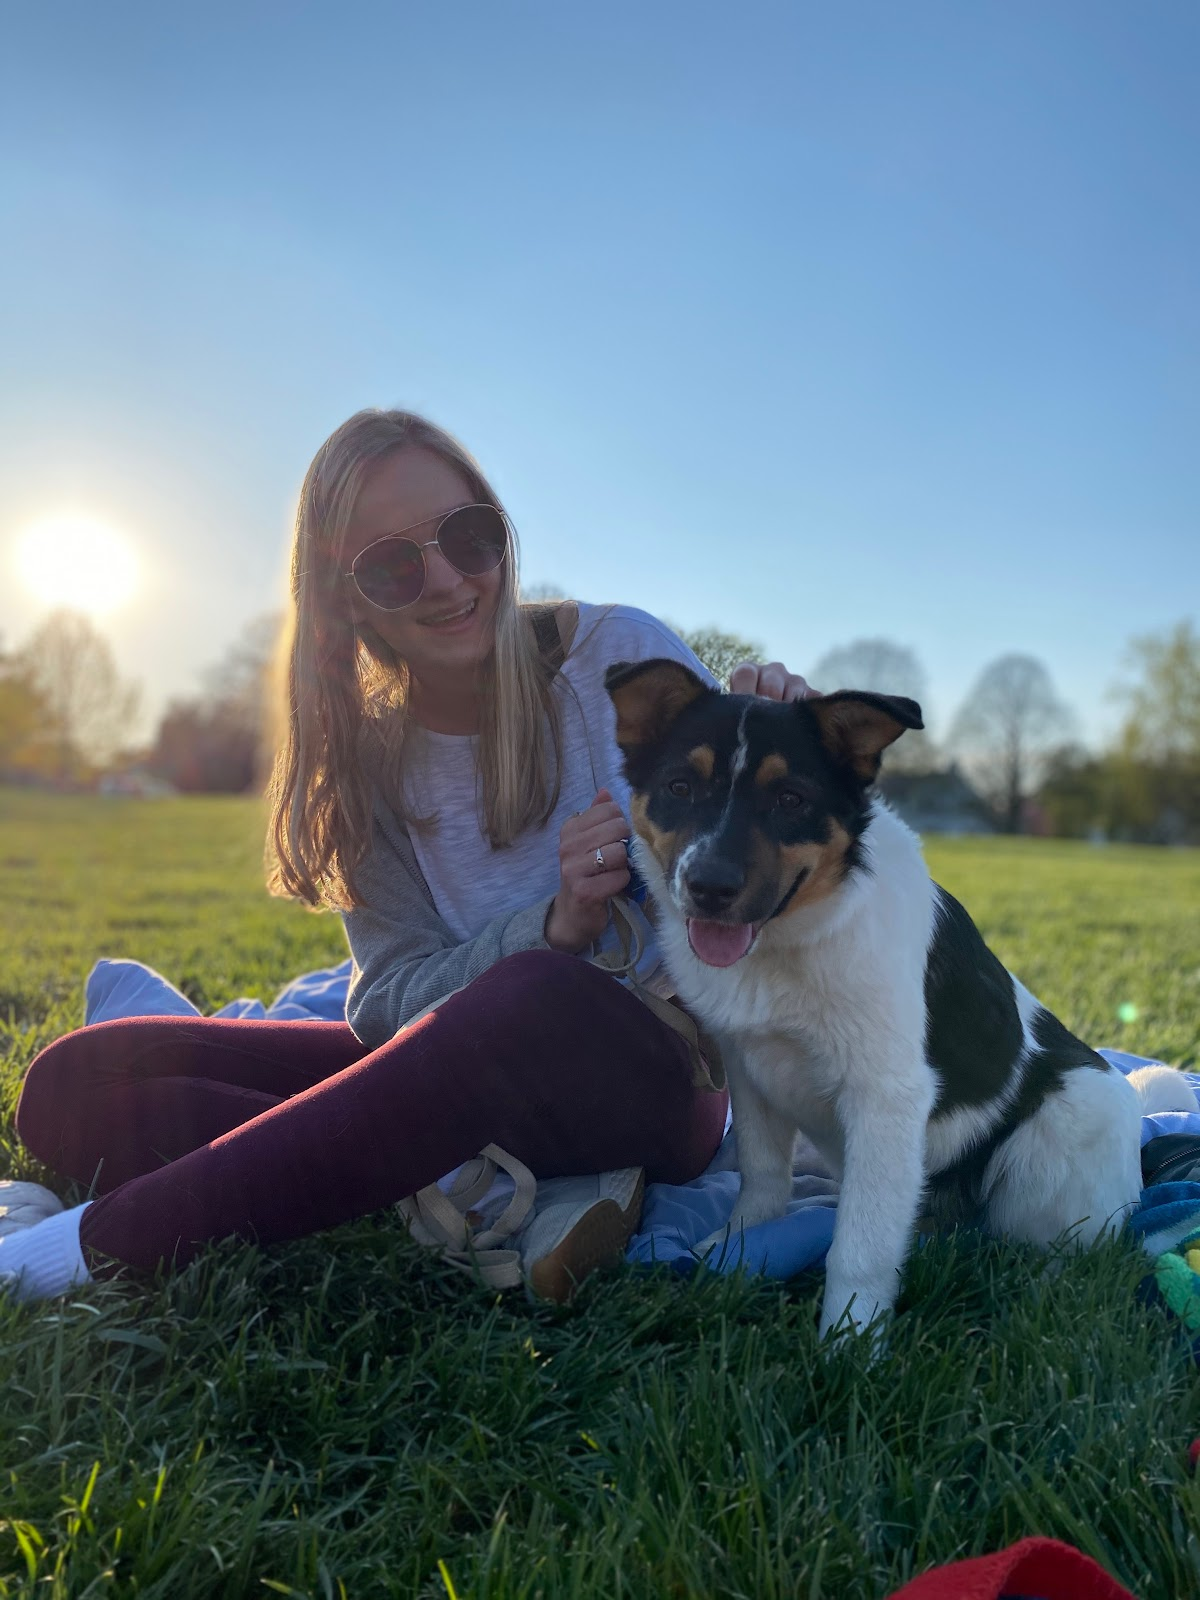 Evie McArthur sits with her puppy Lila in a grassy park.